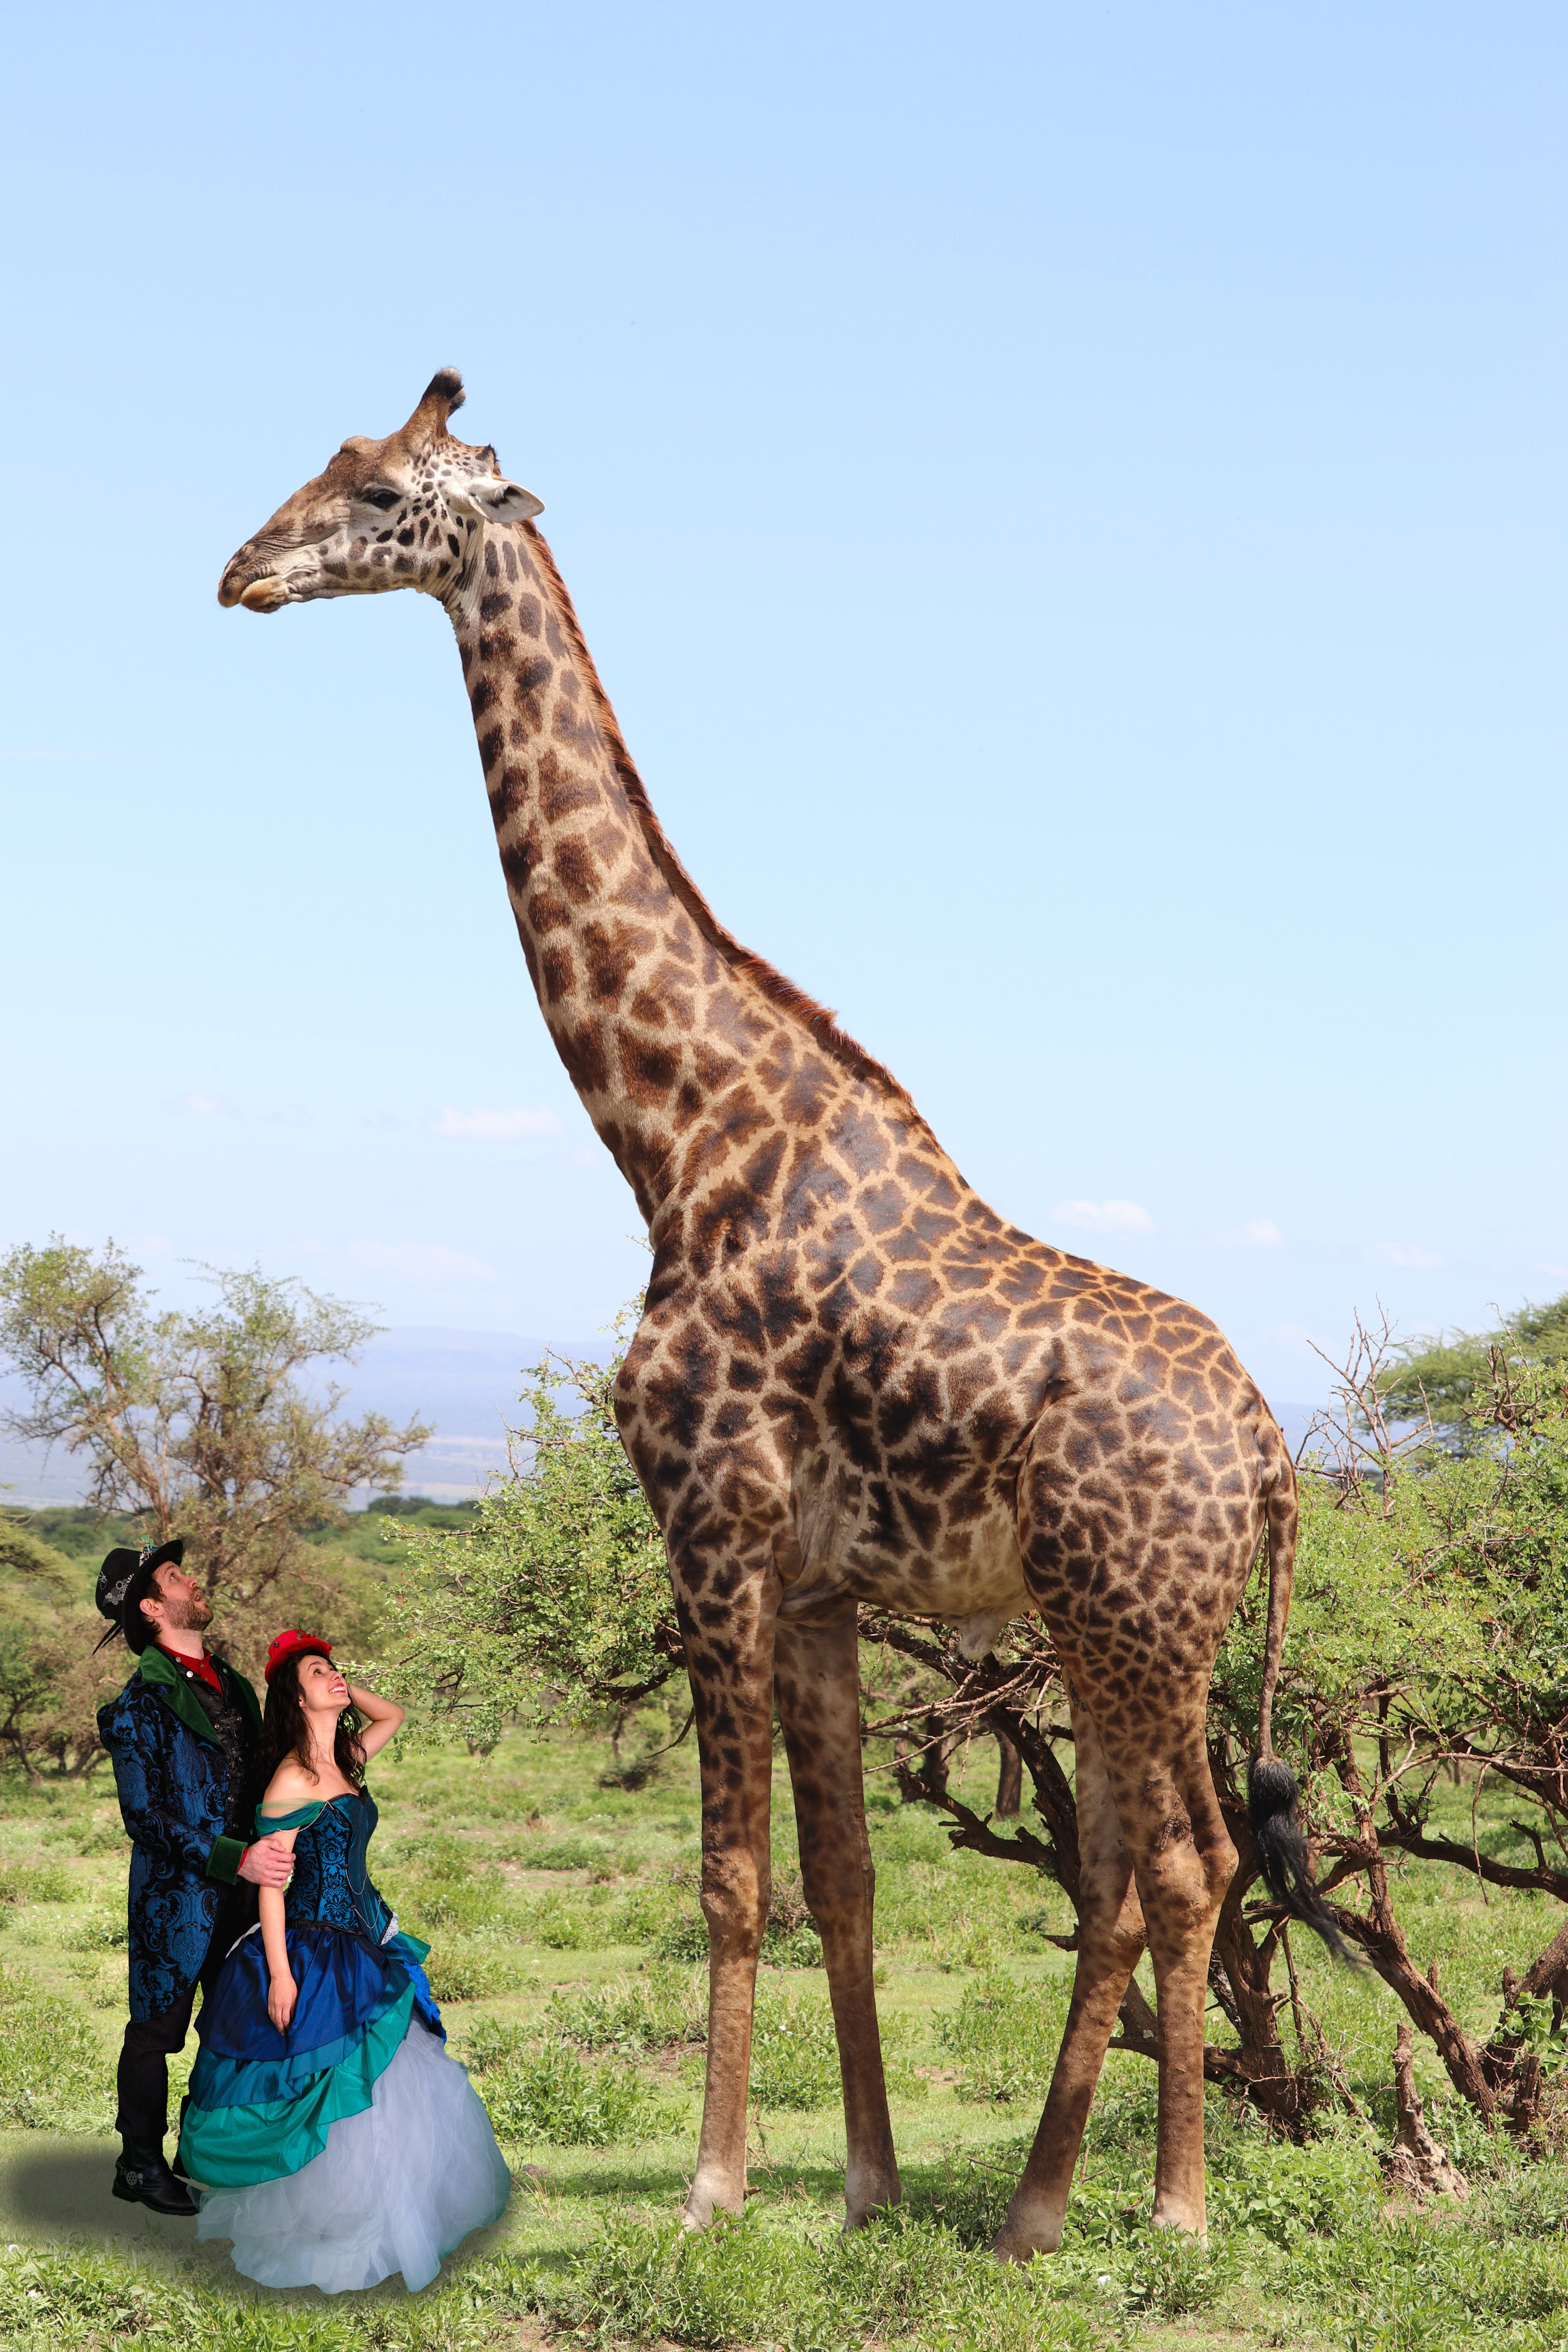 giraffe in the wild man woman standing by looking up